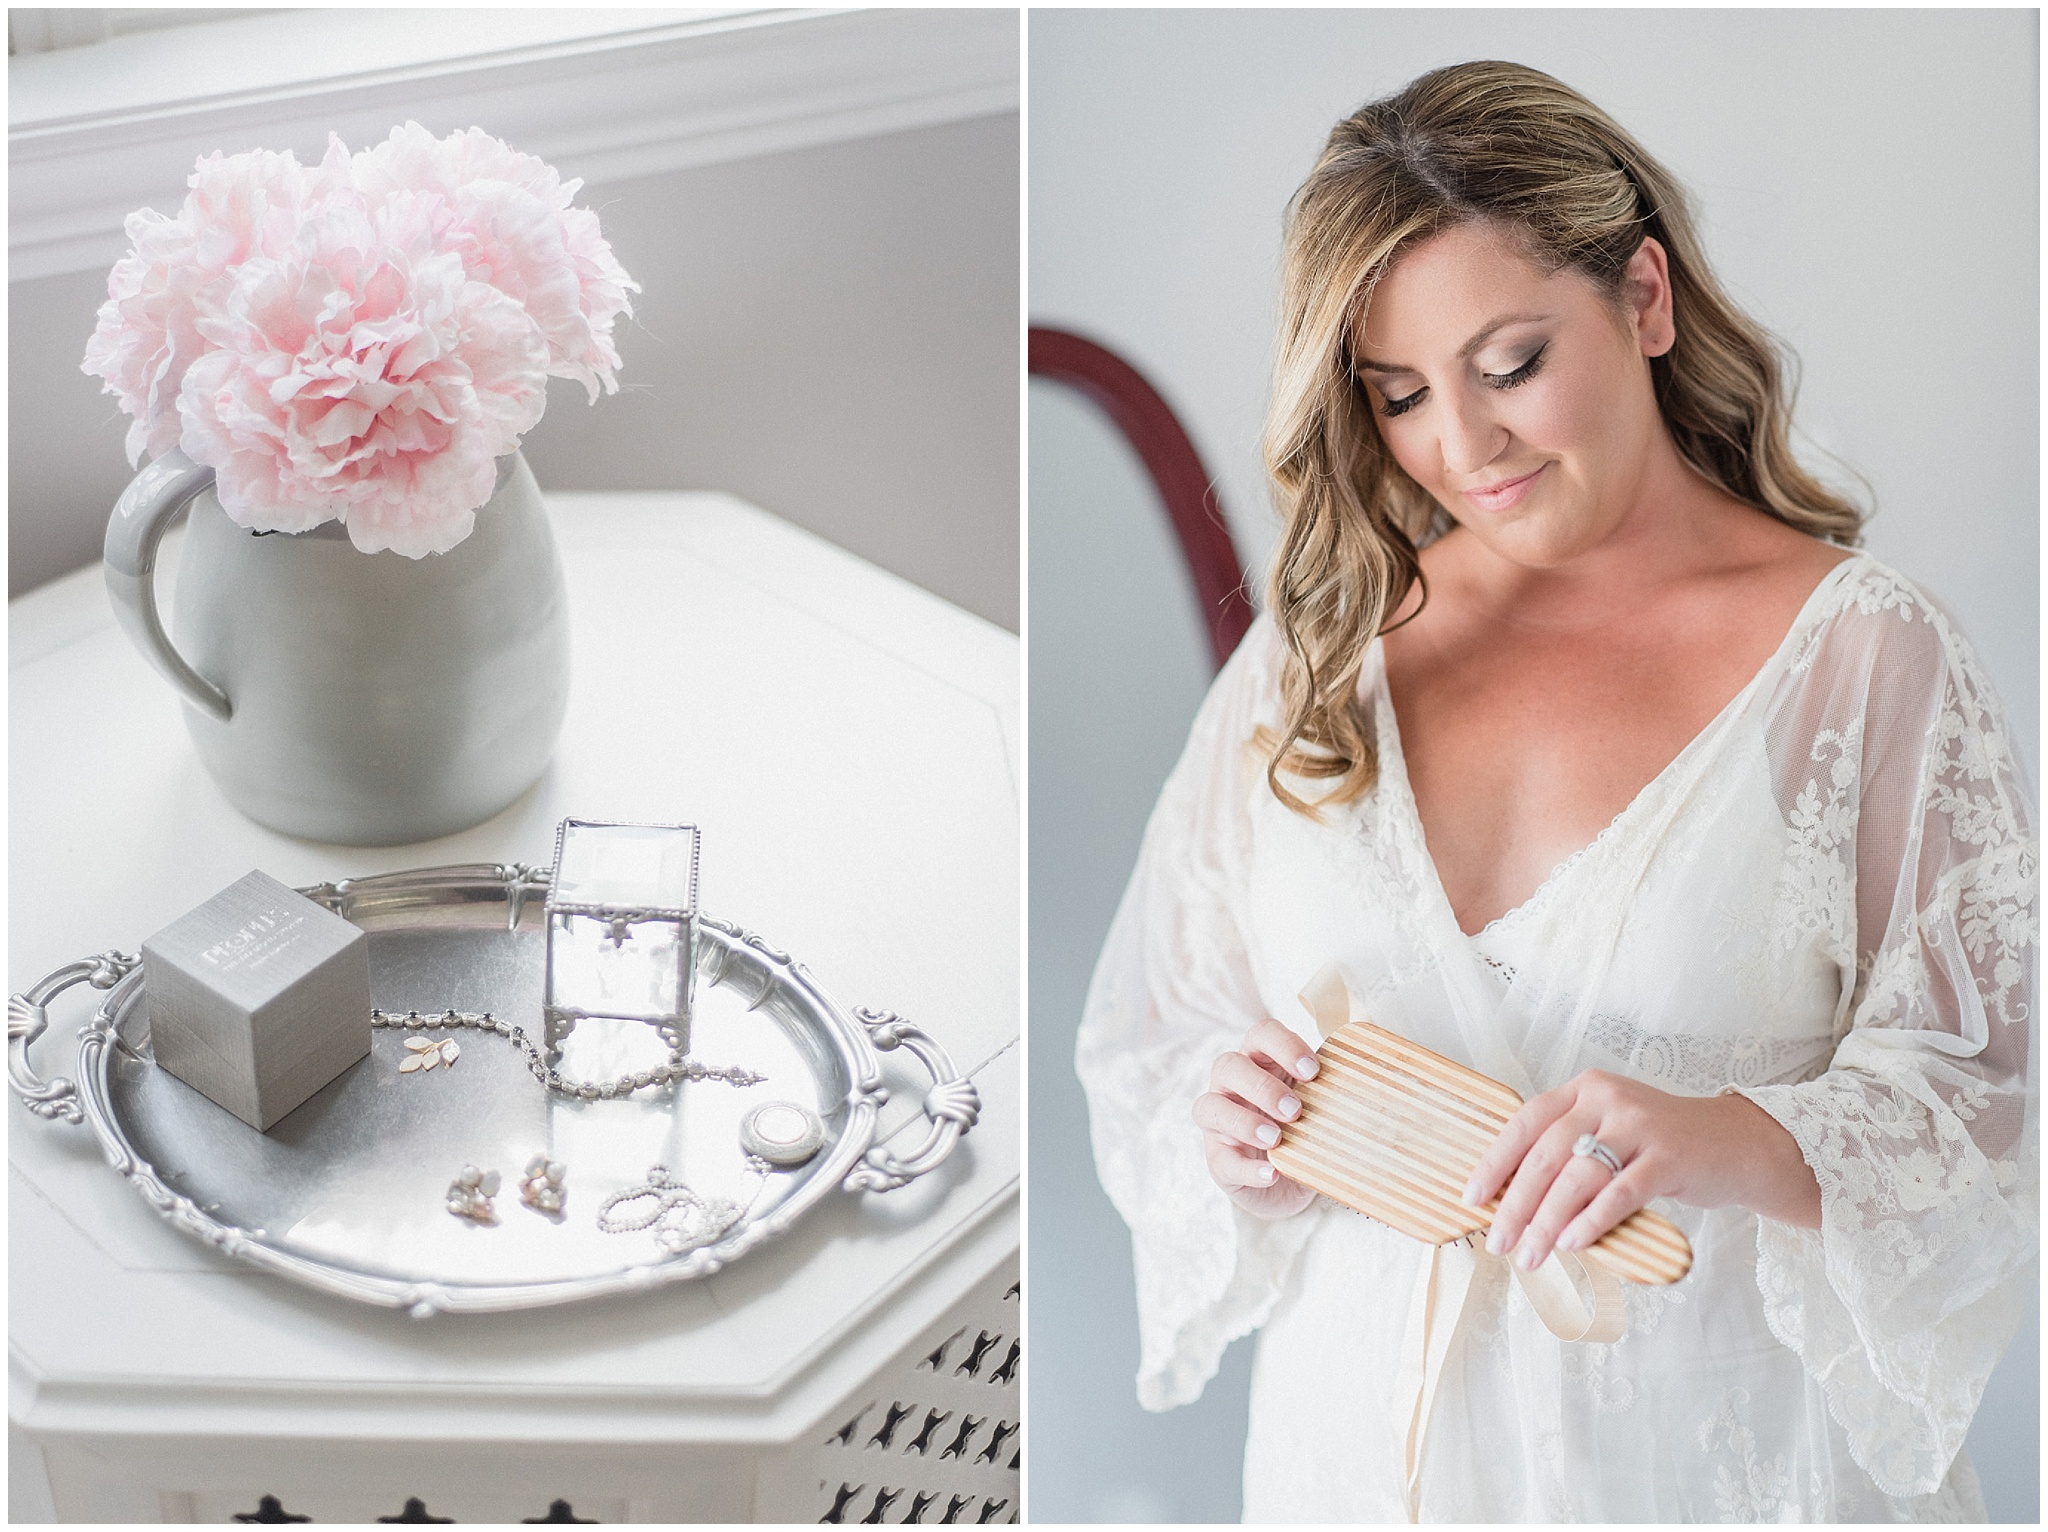 Bride getting ready in feminine white lace robe, photographed by Jenn Kavanagh Photography